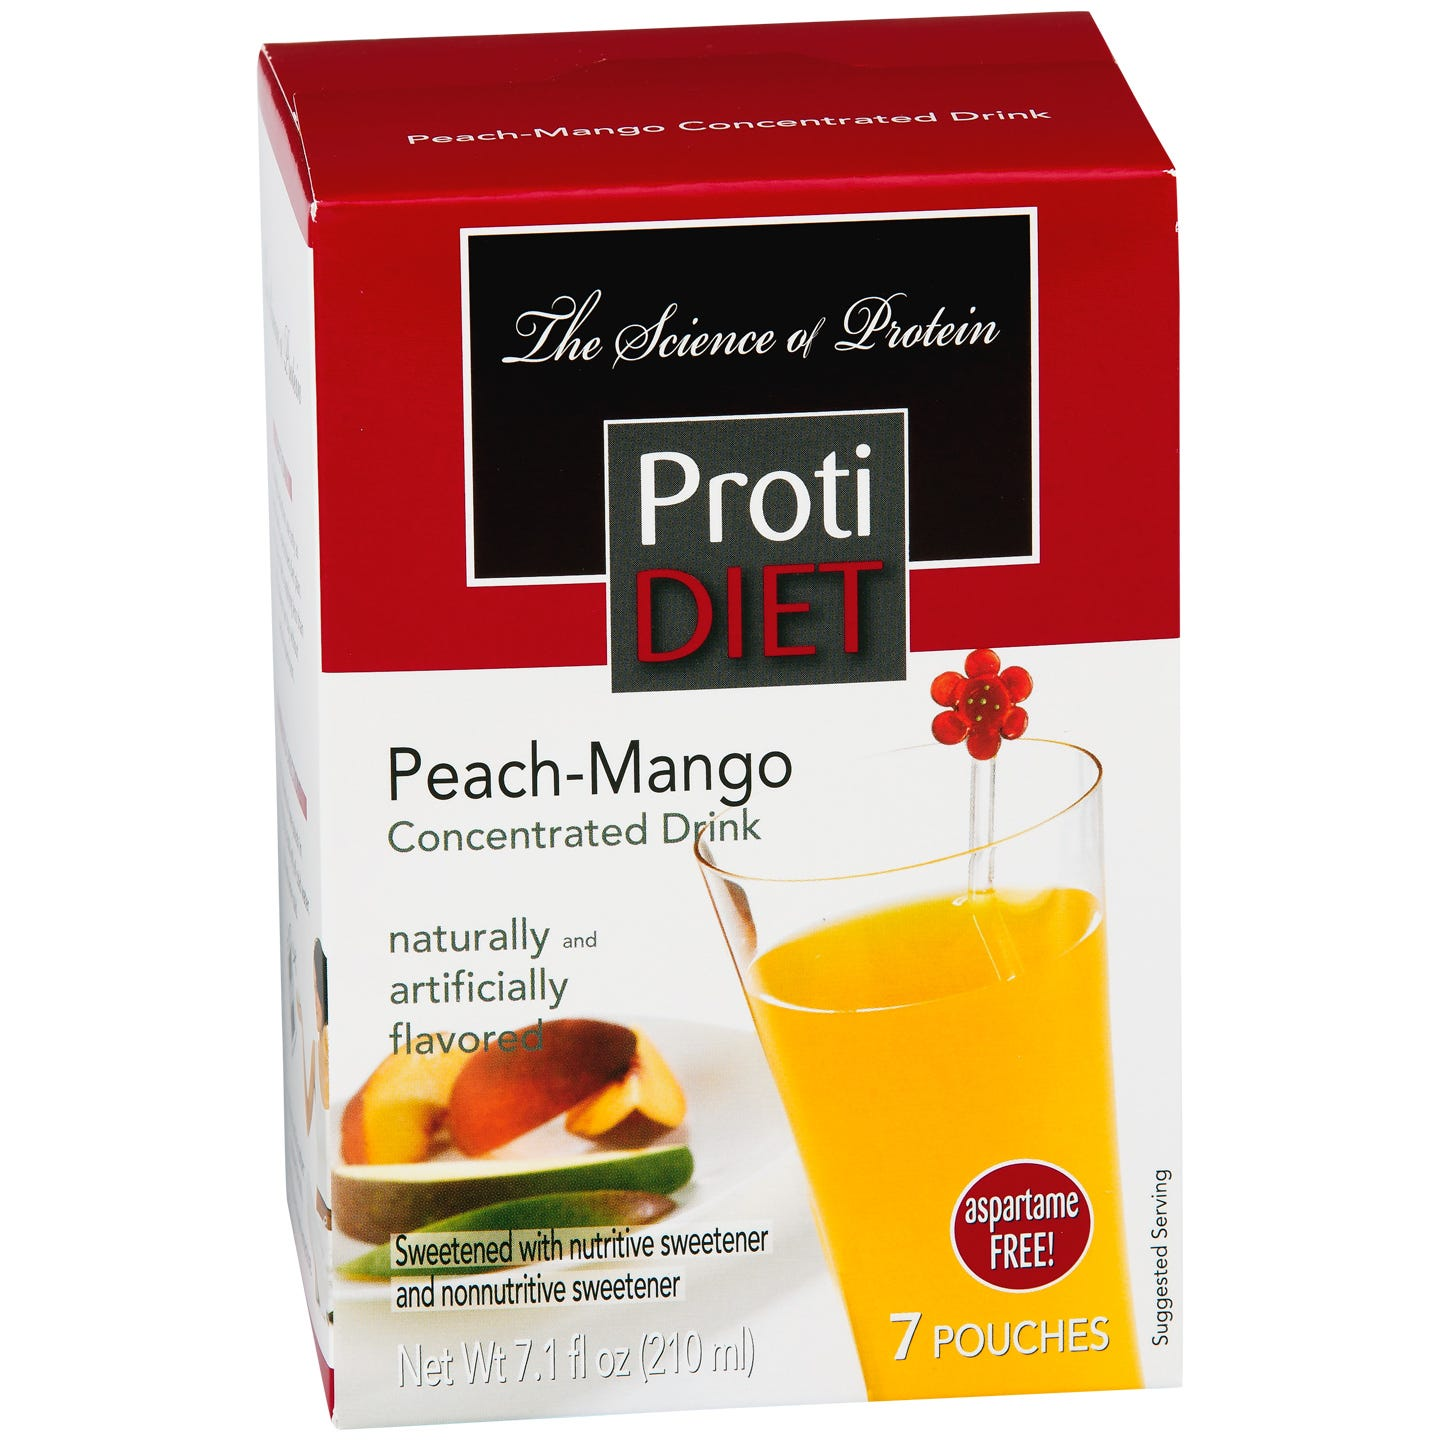 Protein Fruit Drink Concentrate Peach Mango (7 ct) - ProtiDiet - Rapid Diet Weight Loss Products Shop